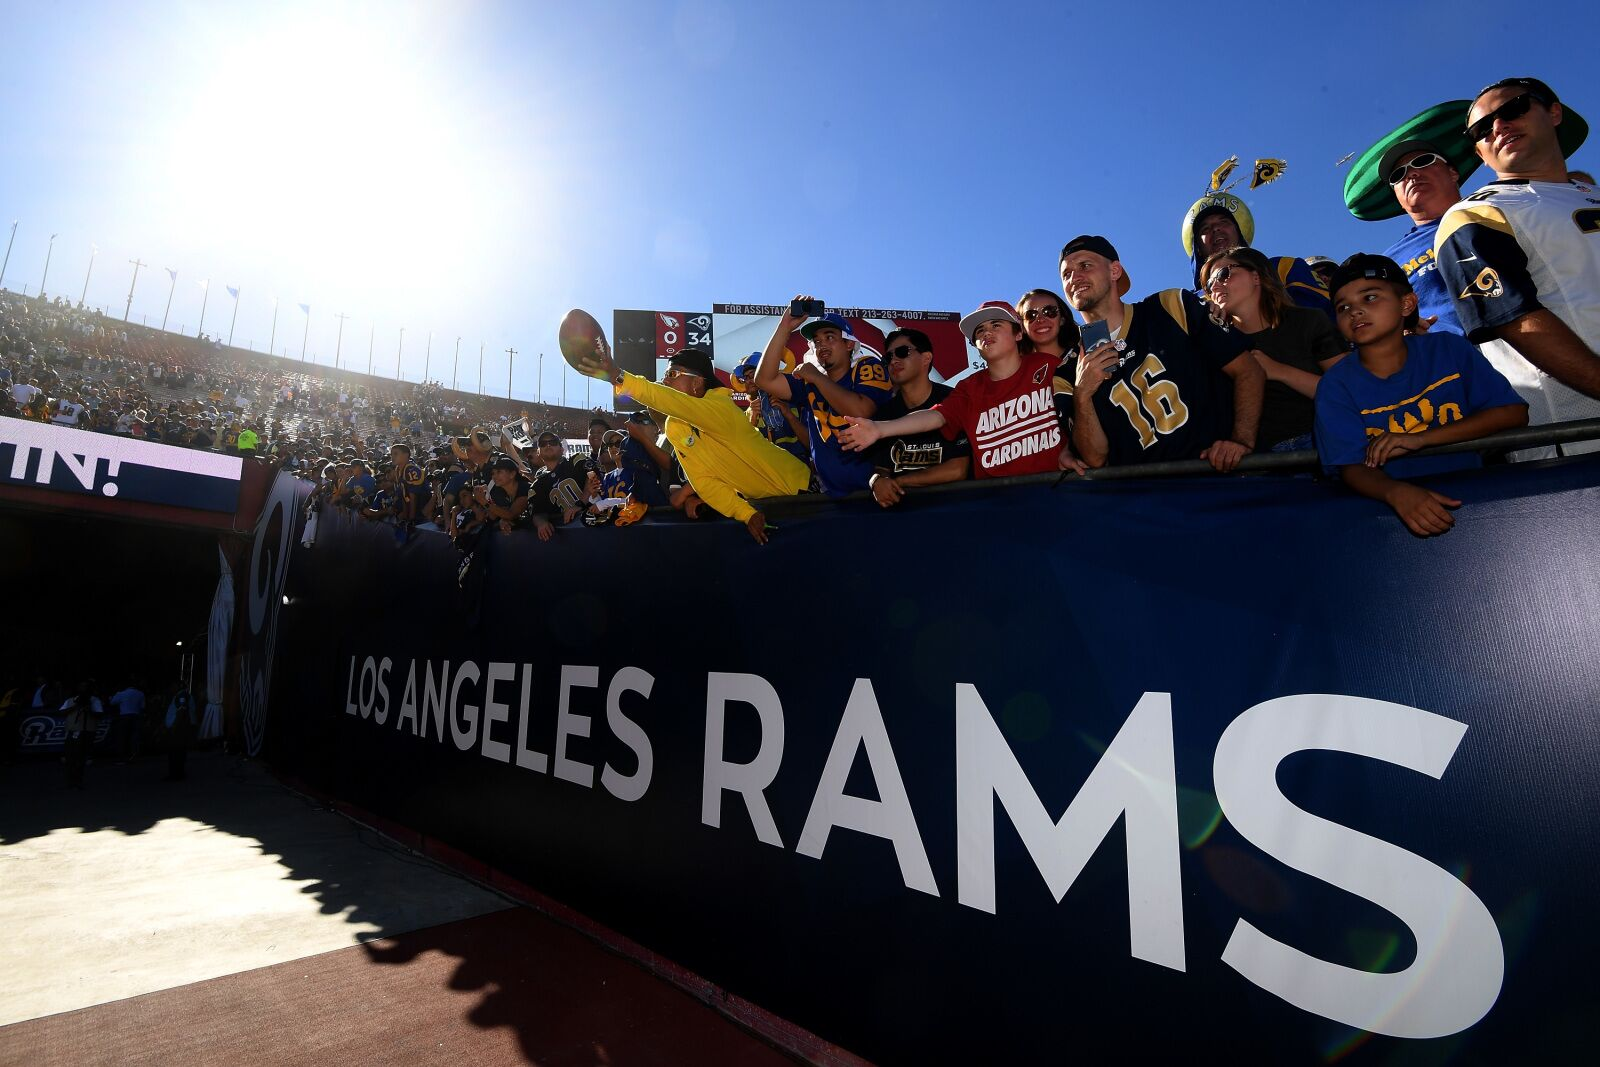 The NFL gets it right moving the Rams and Chiefs back to LA